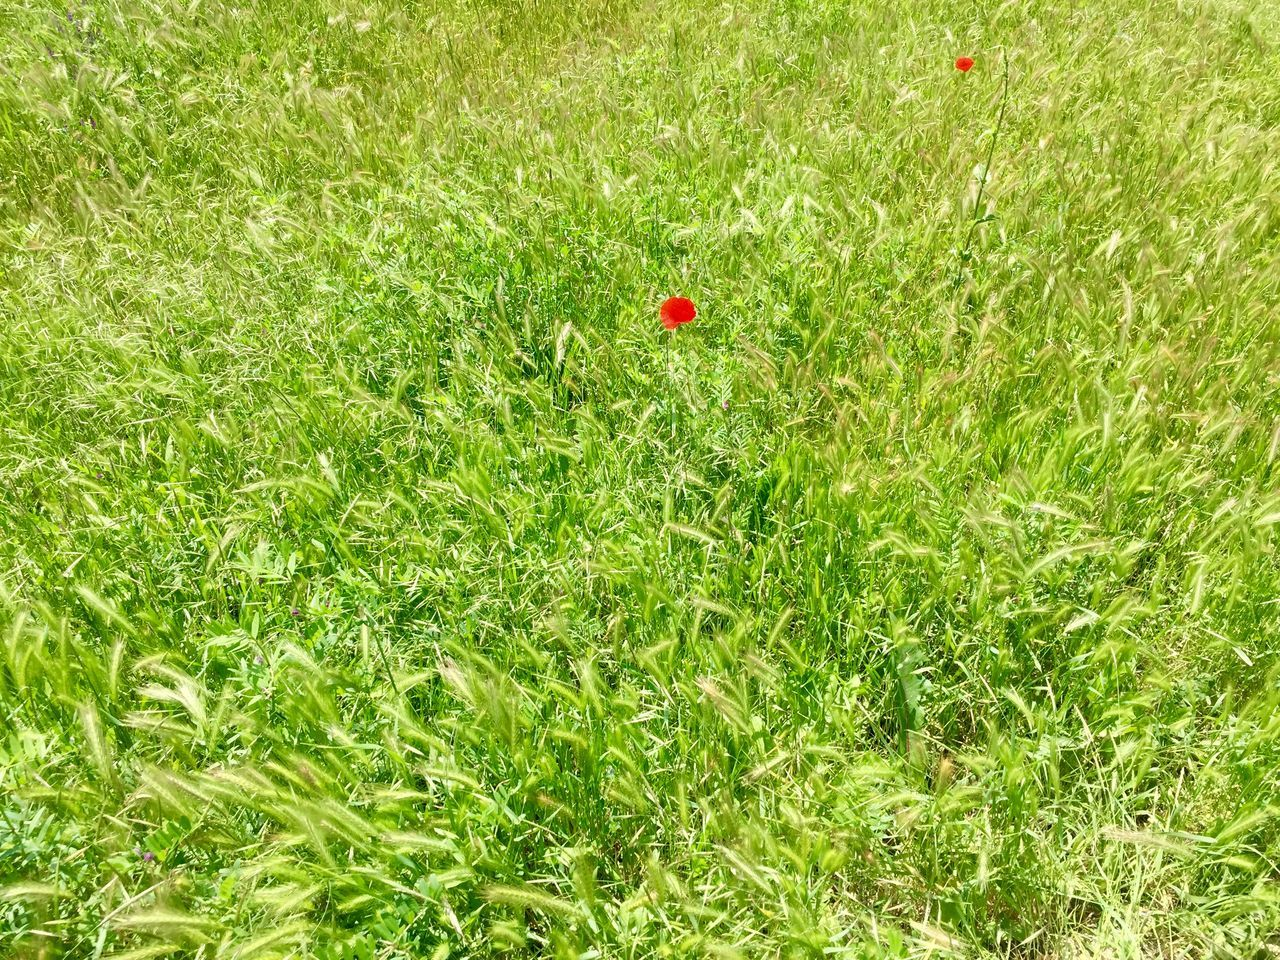 Beauty In Nature Day Field Field Flower Freshness Grass Green Green Color Green Field Growth Ladybug Meadow Nature Nature No People Outdoors Outdoors Photograpghy  Poppy Red